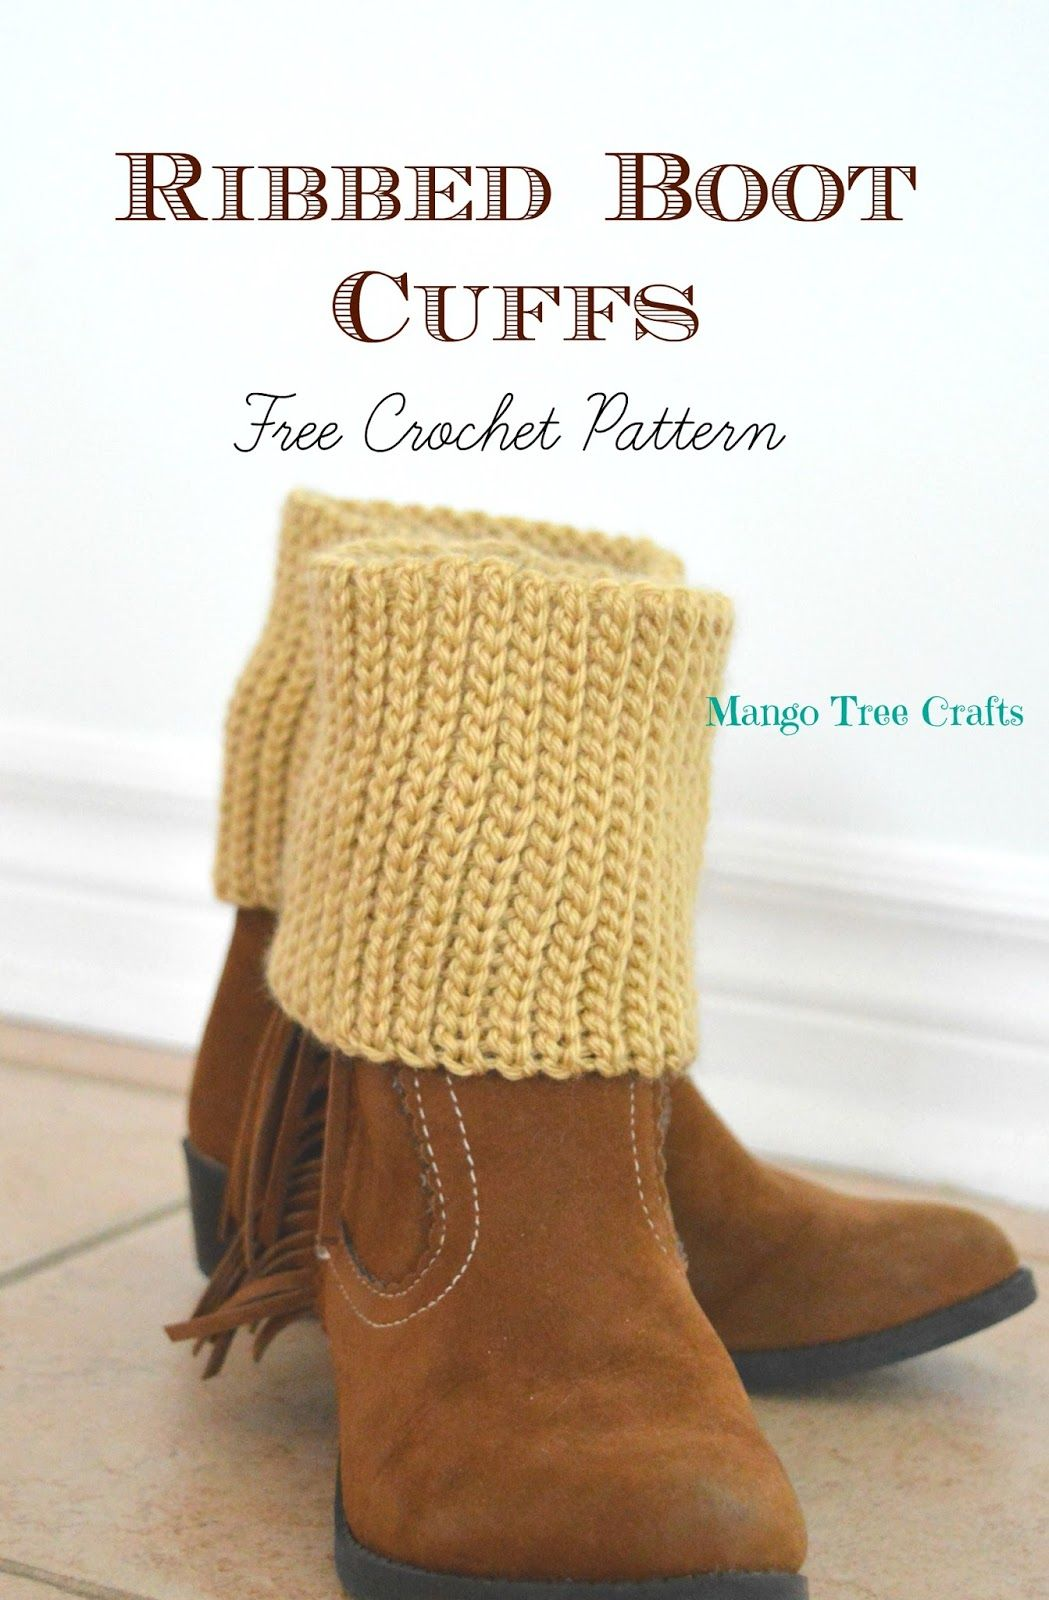 Ribbed boot cuffs free crochet pattern | Craft Ideas | Pinterest ...